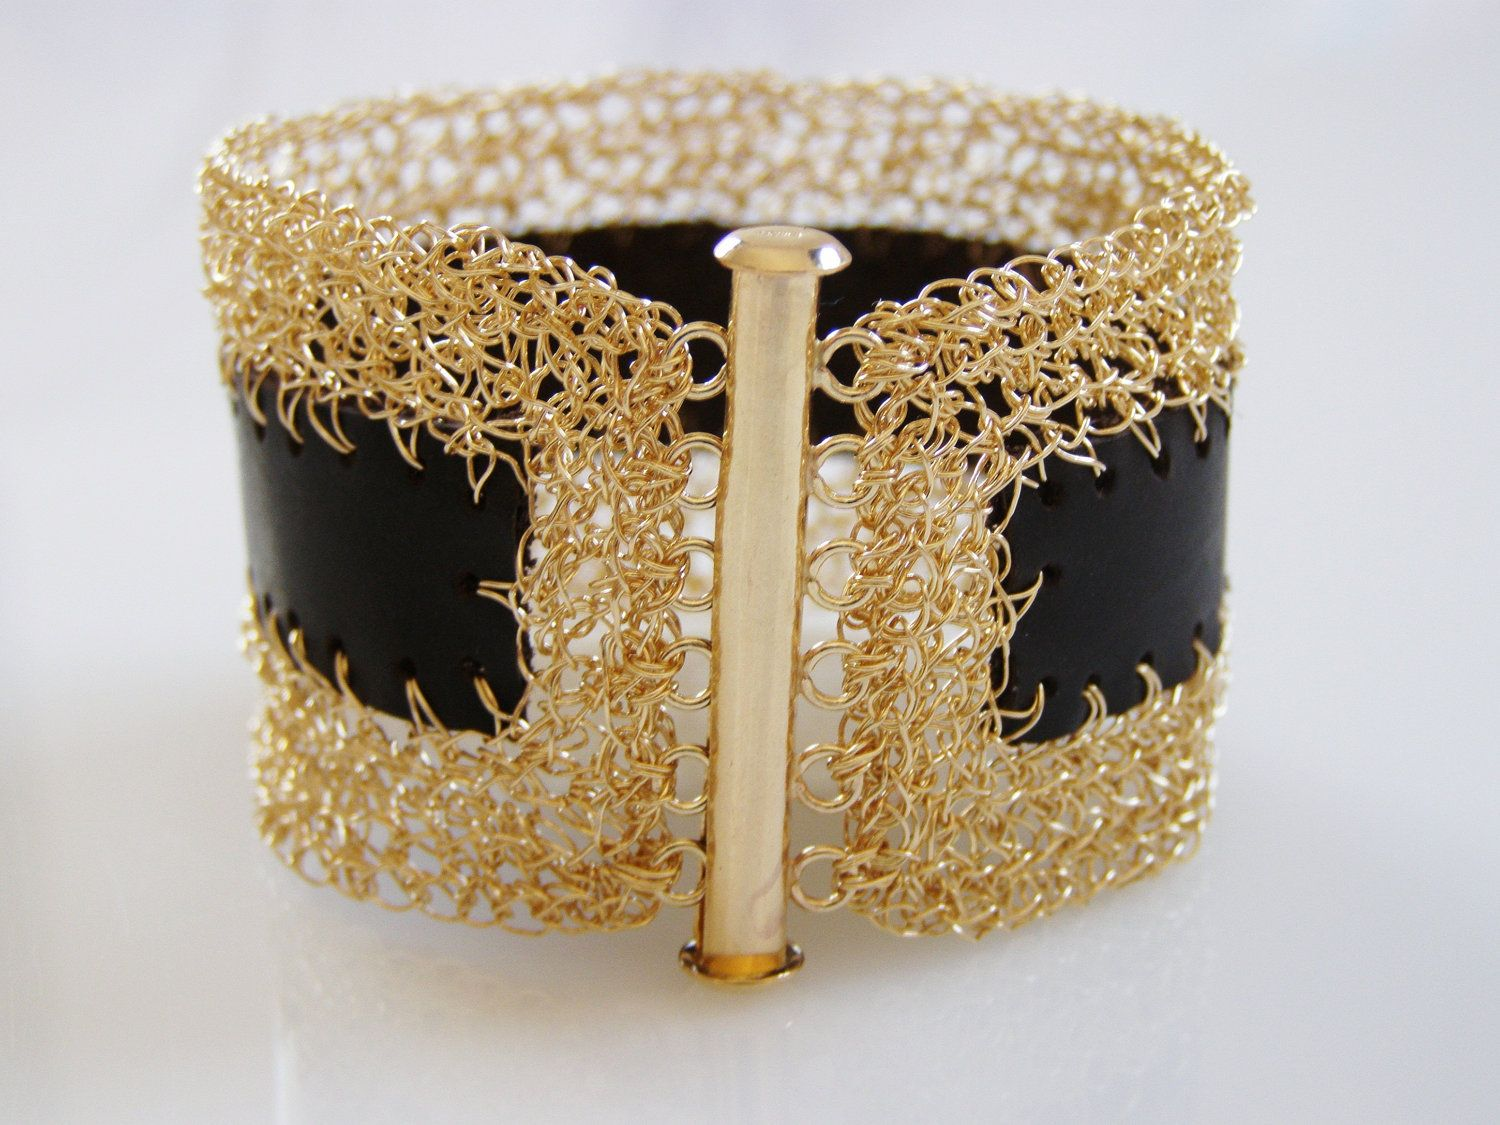 Bracelet...a combination of crochet gold filled wire and leather